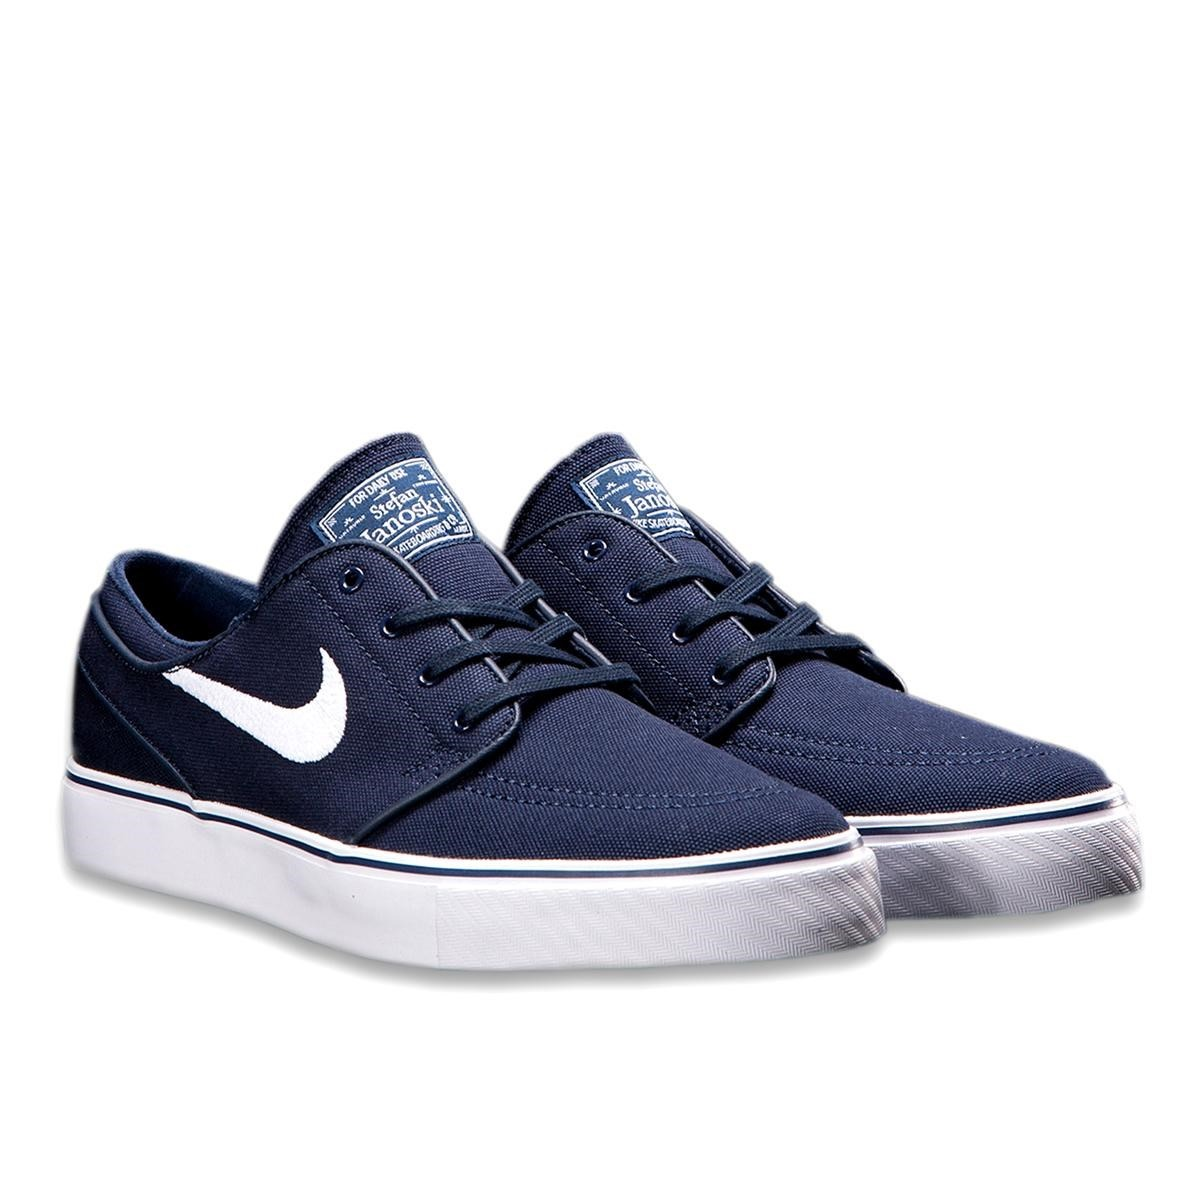 check out 1e6af 33f79 tênis nike zoom sb stefan janoski canvas original. Carregando zoom.